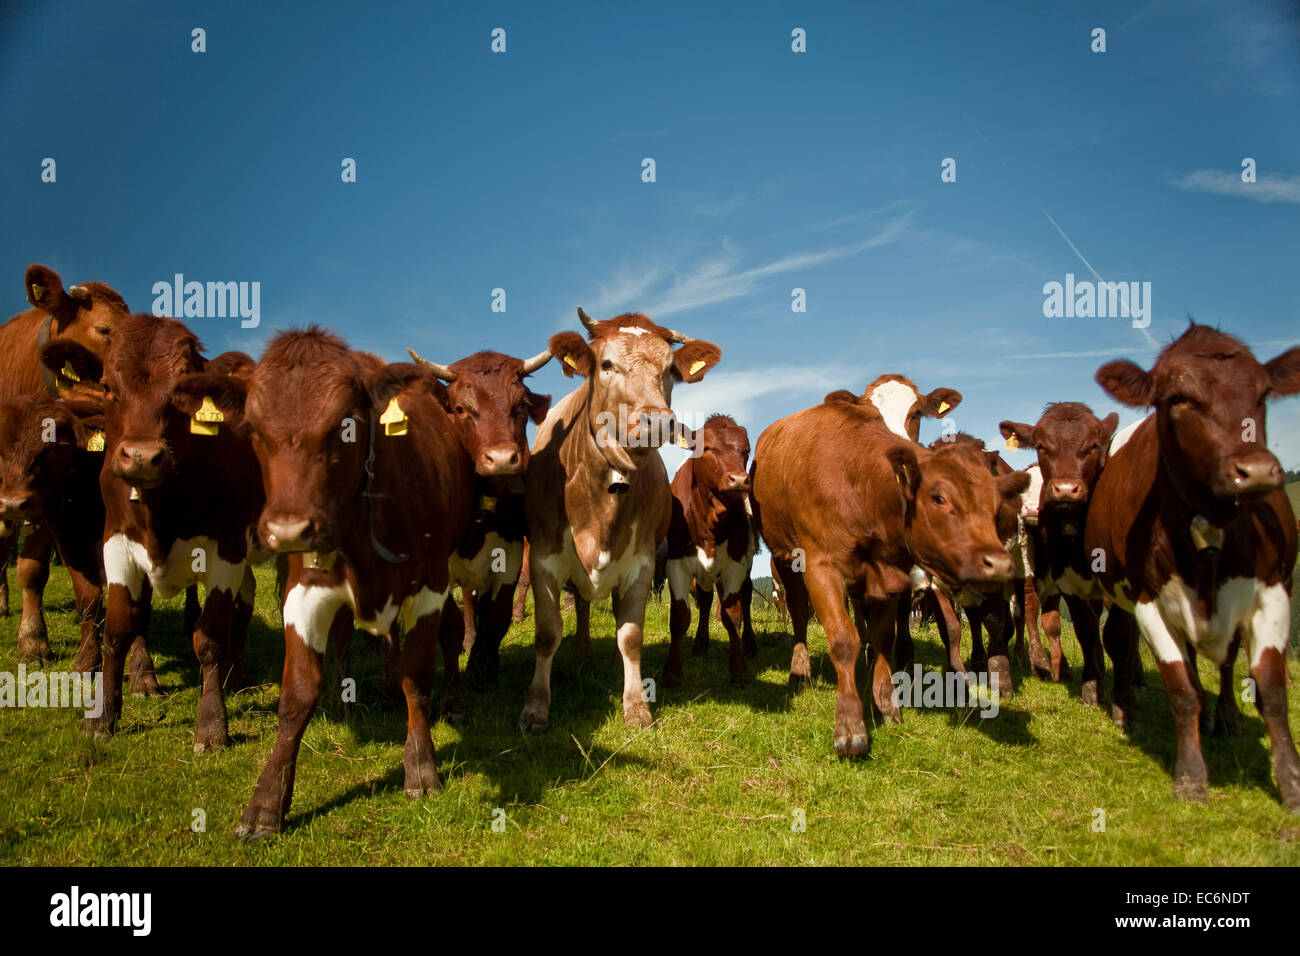 Cows coming closer Frontshot of Cowherd, low angle, impressive - Stock Image